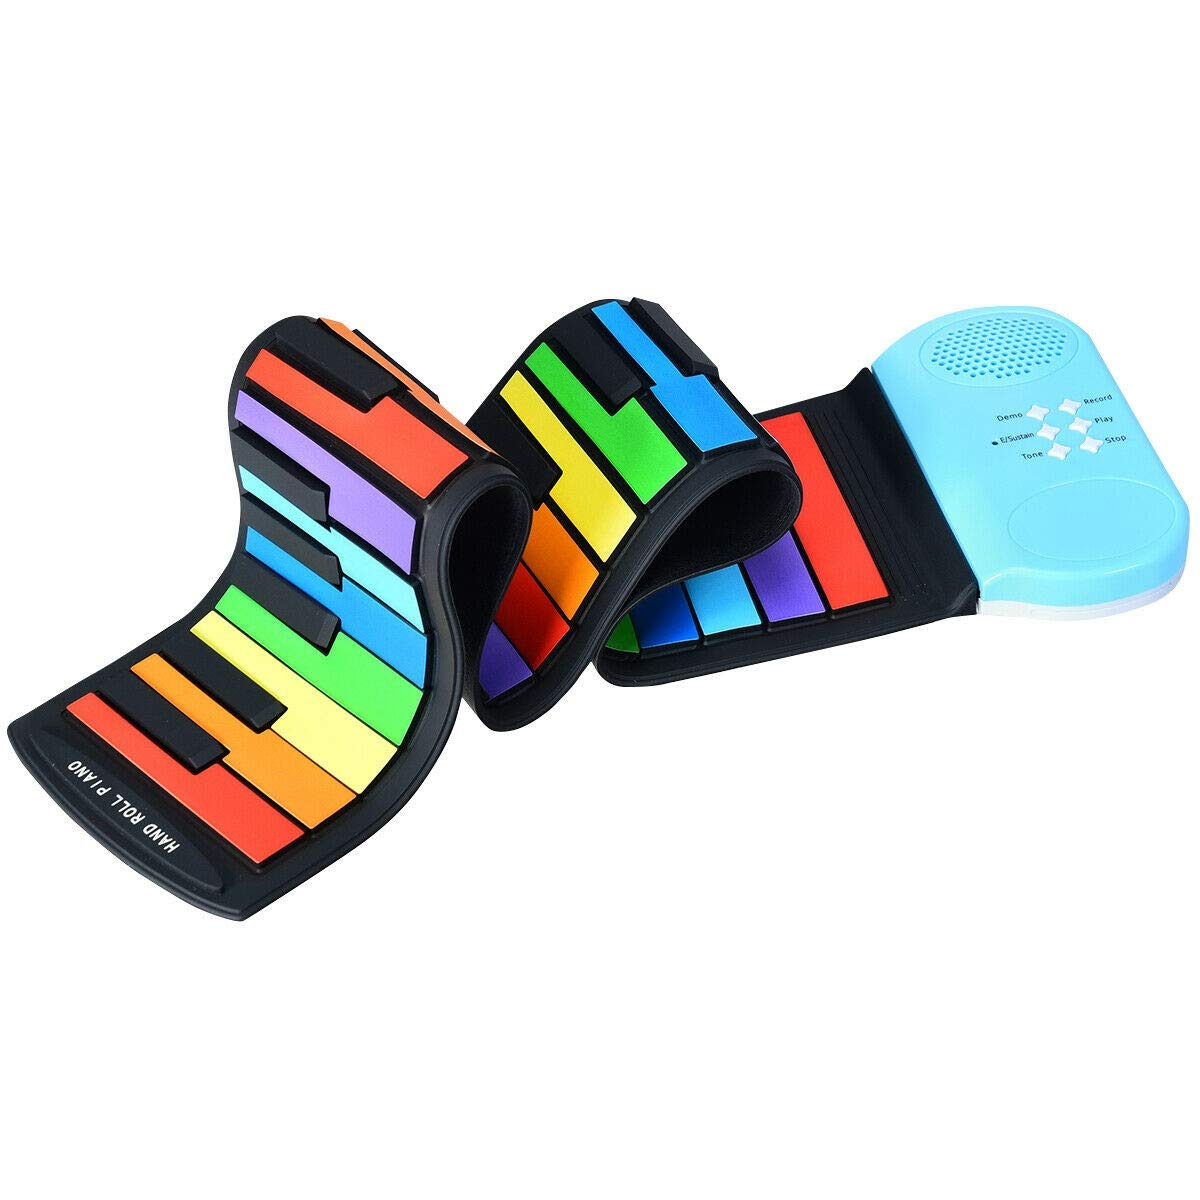 USA_Best_Seller 49-Key Roll-up Piano with Support Earphone Colorful Rainbow Home School Kindergarten Long Lasting Use Fun Game by USA_Best_Seller